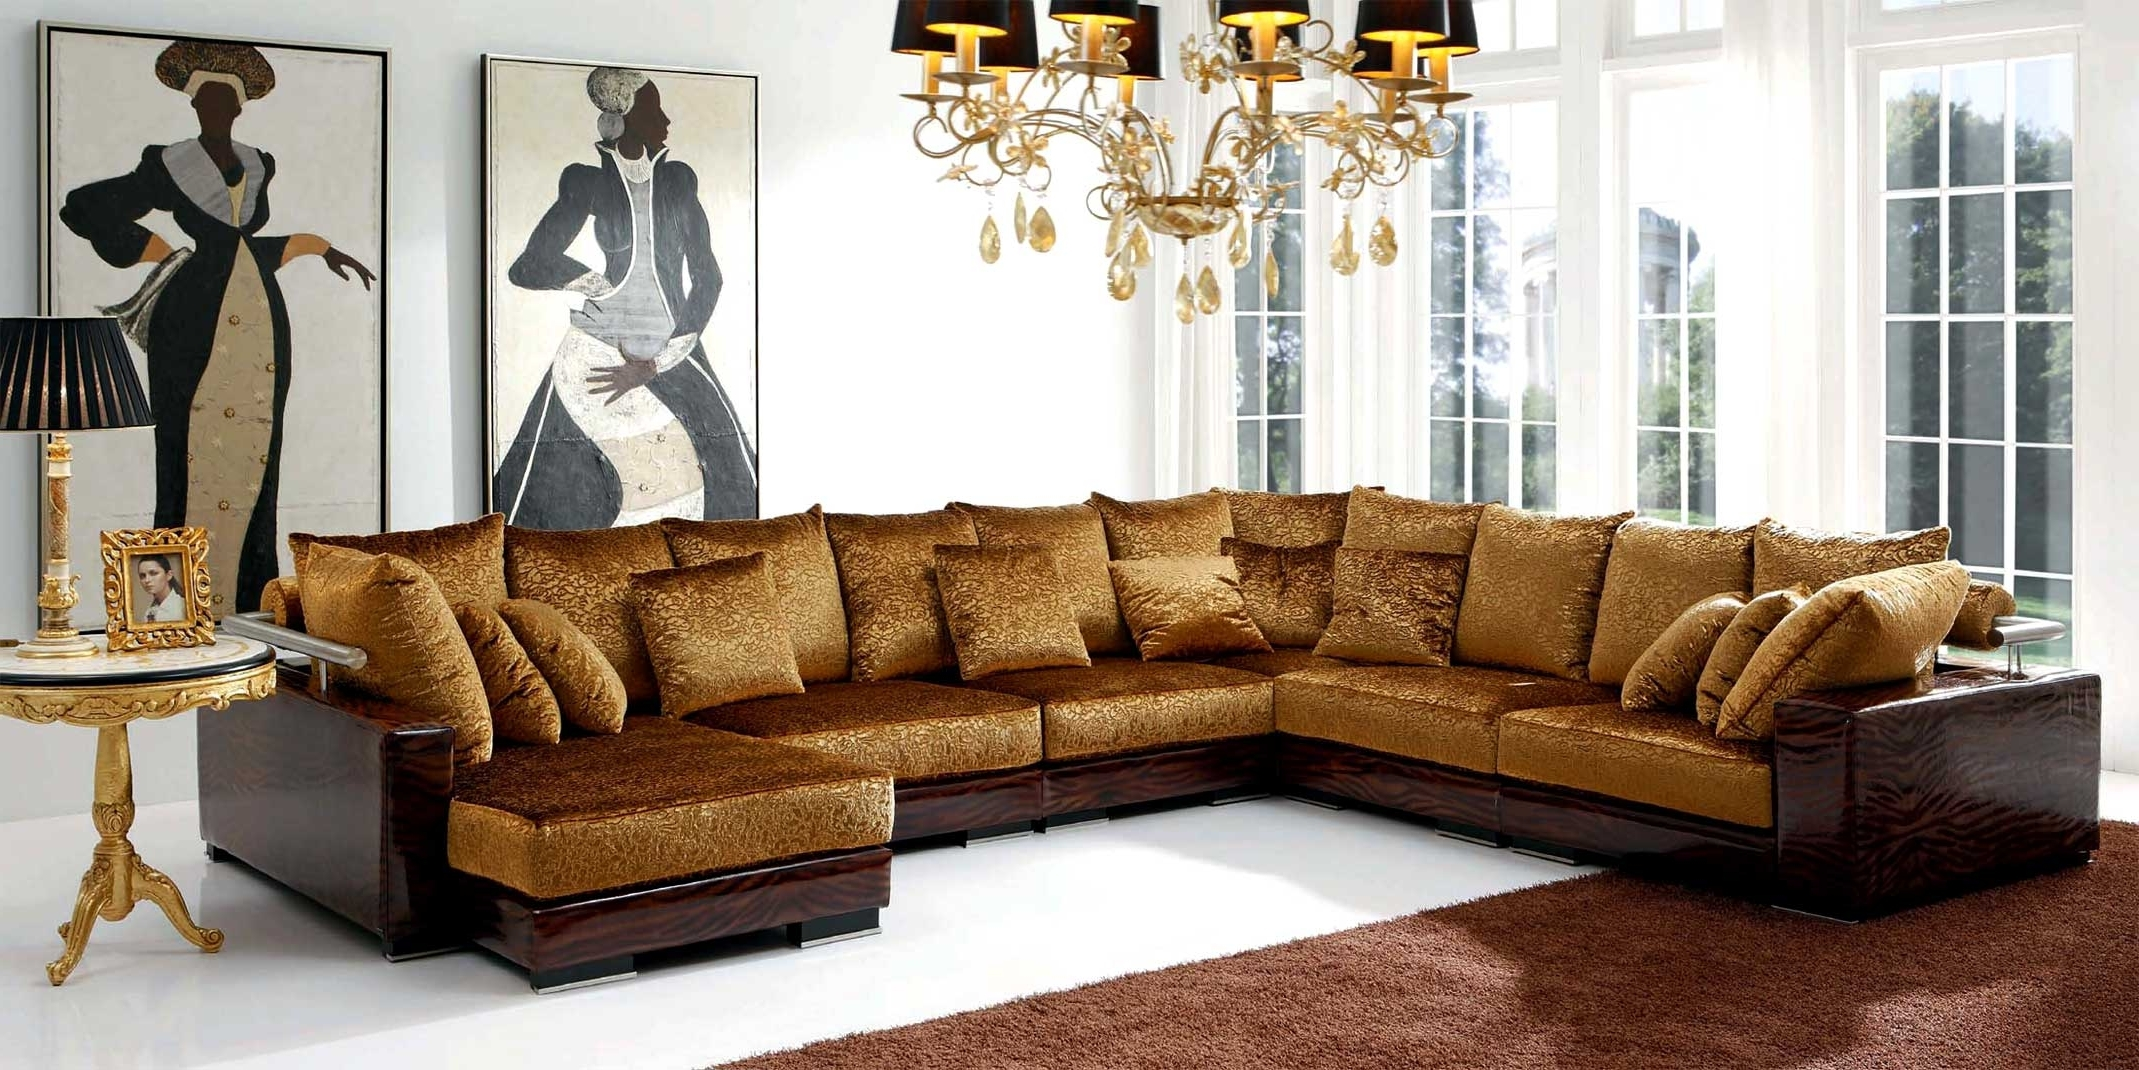 Sofa Design (View 17 of 20)